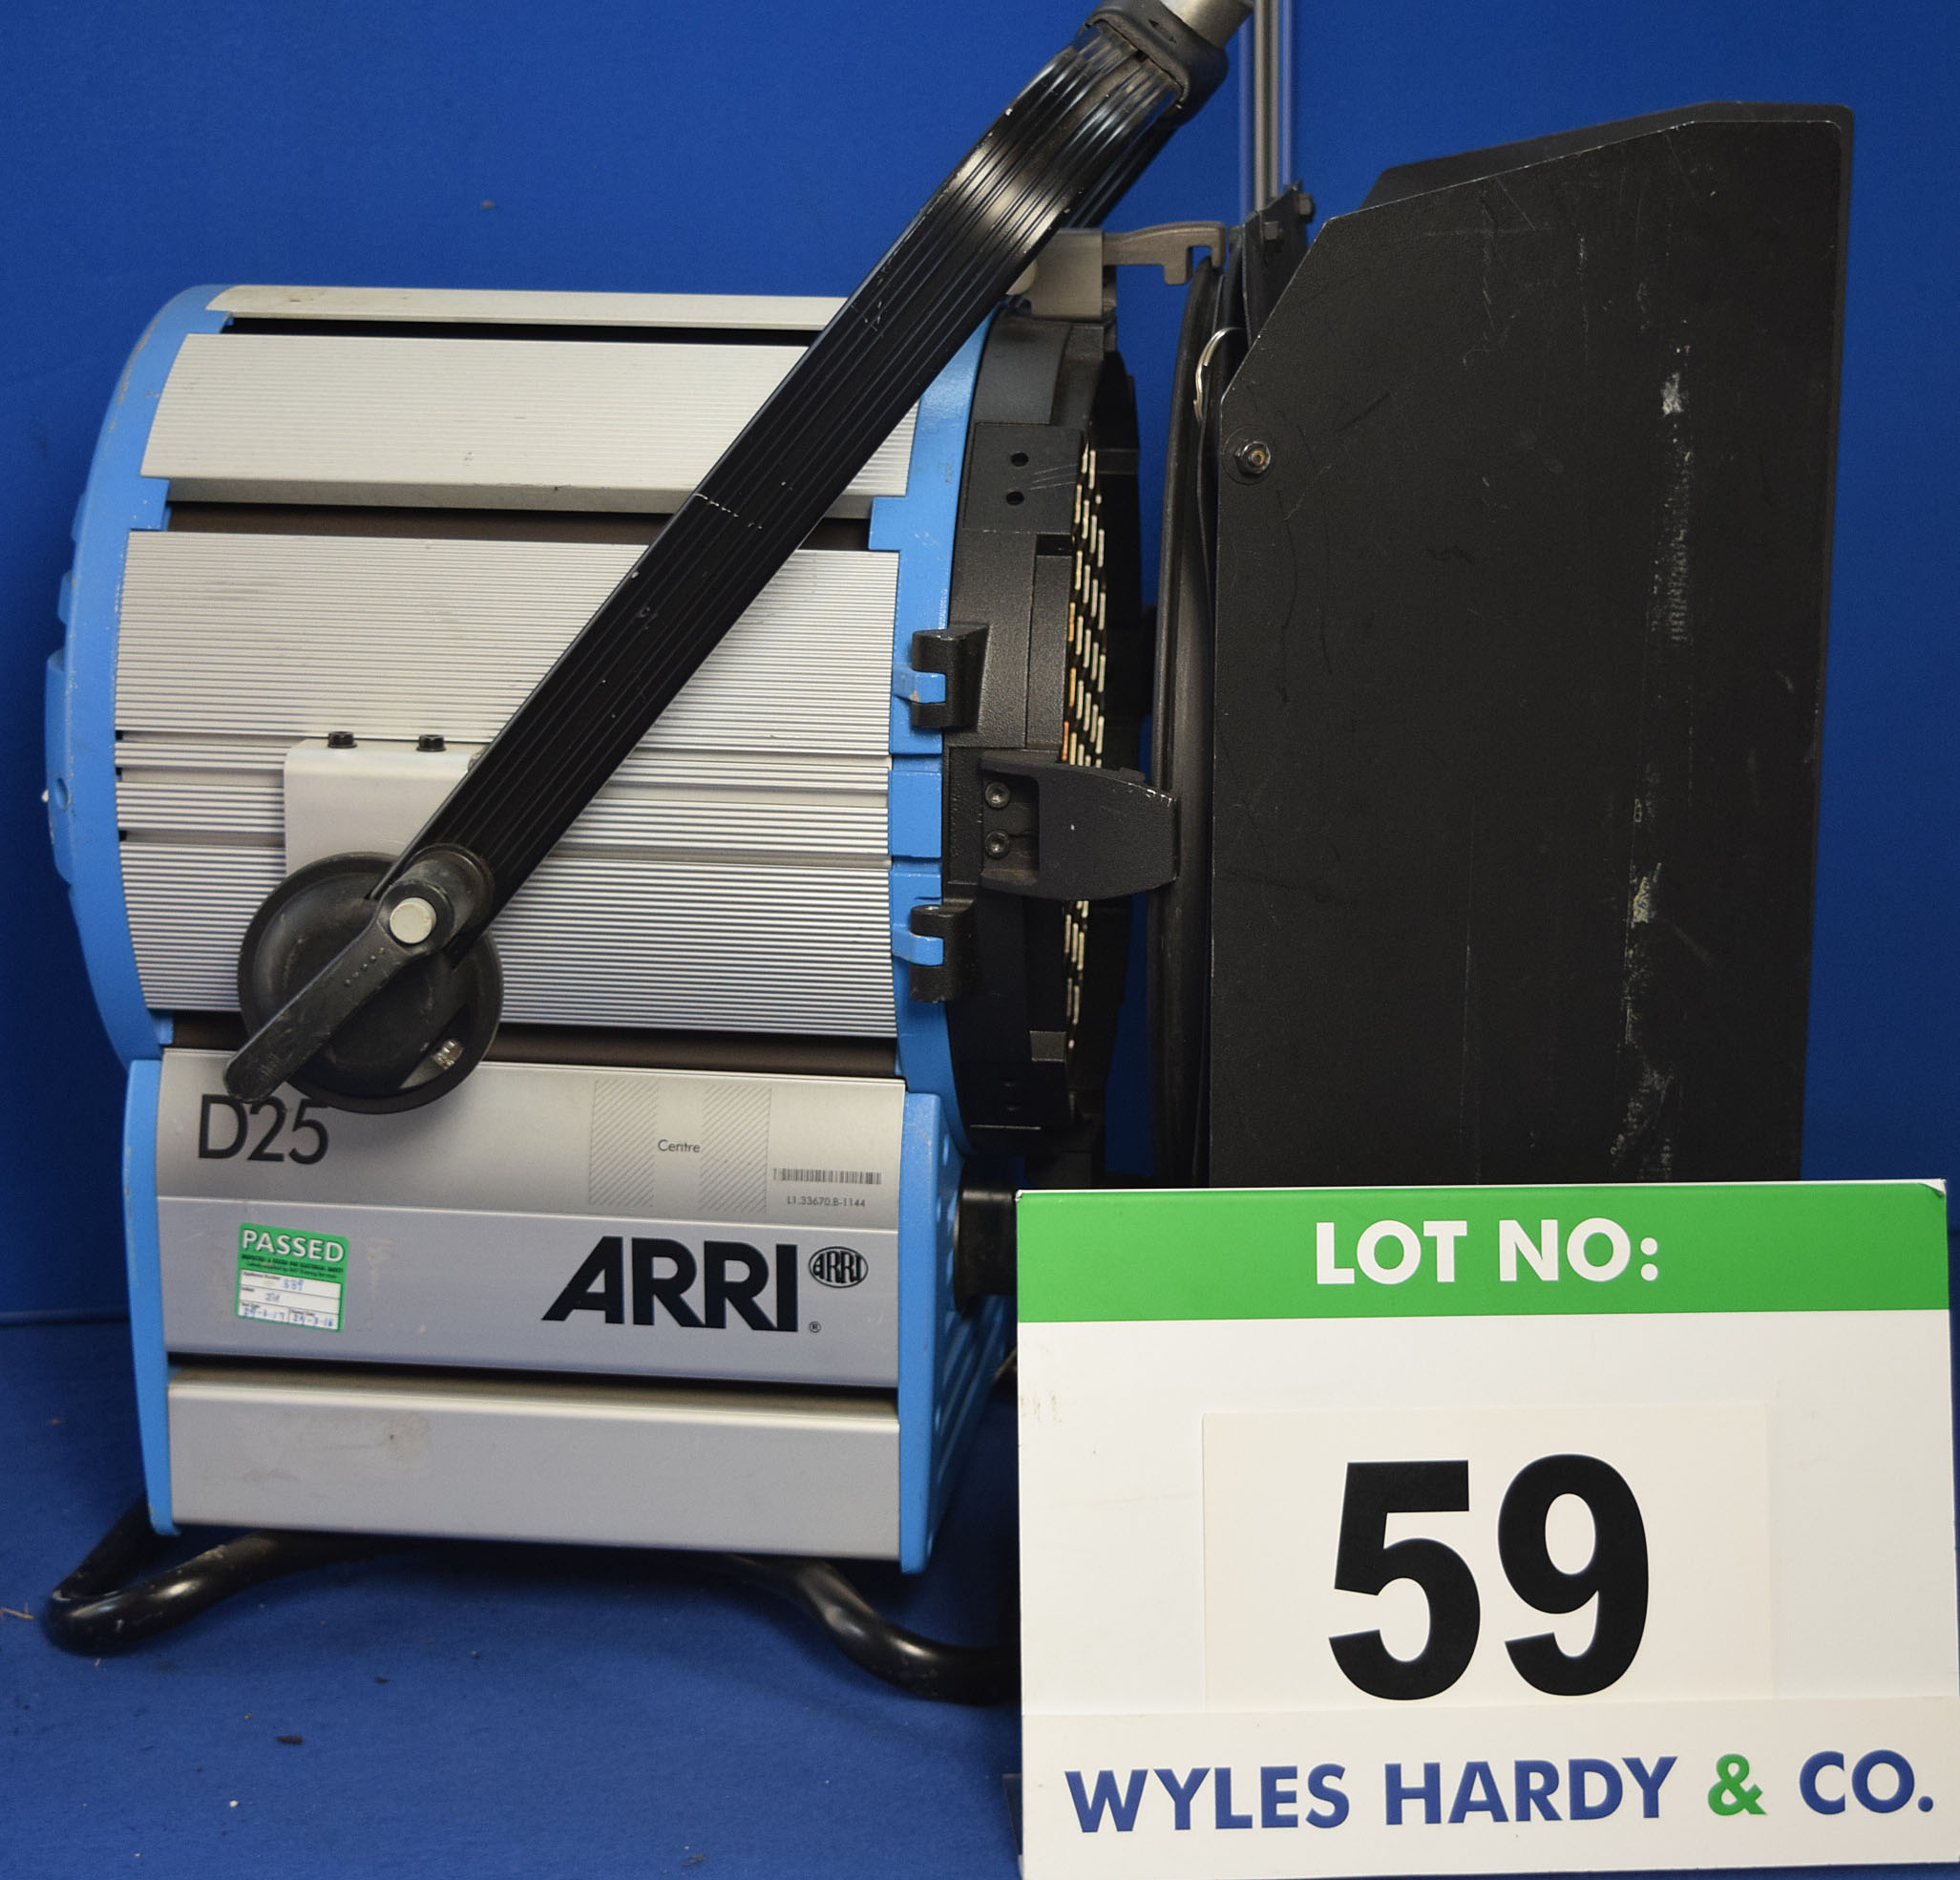 Lot 59 - An ARRI D25 2500W Light with fitted Barn Doors and Stirrup Mount. Recorded Hours: 191 hours